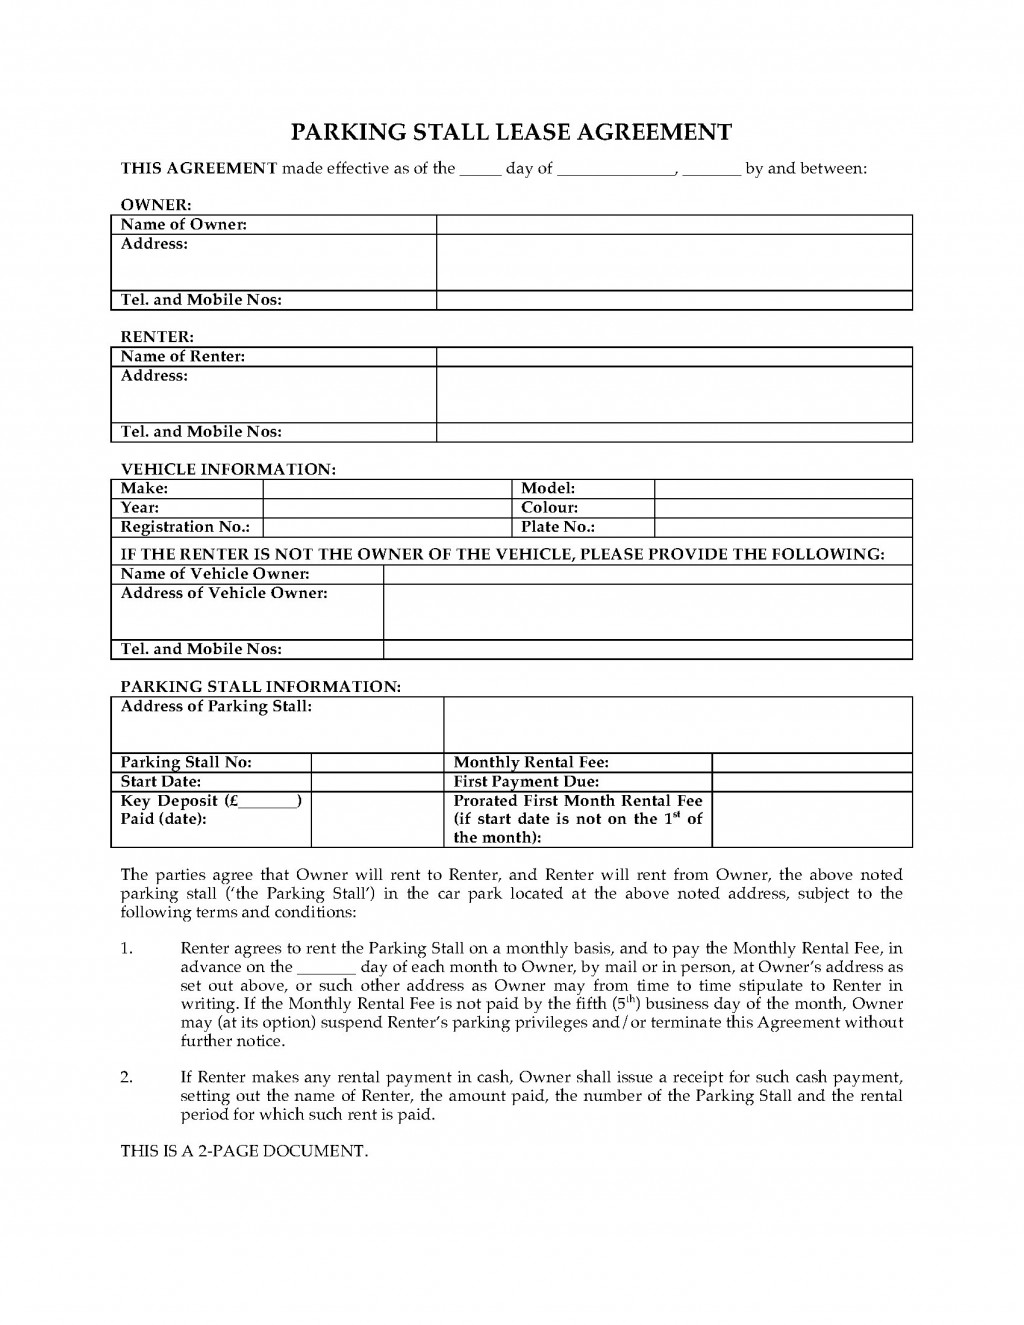 003 Exceptional Car Lease Agreement Template High Definition  Vehicle Ontario Rental Singapore LeasingLarge